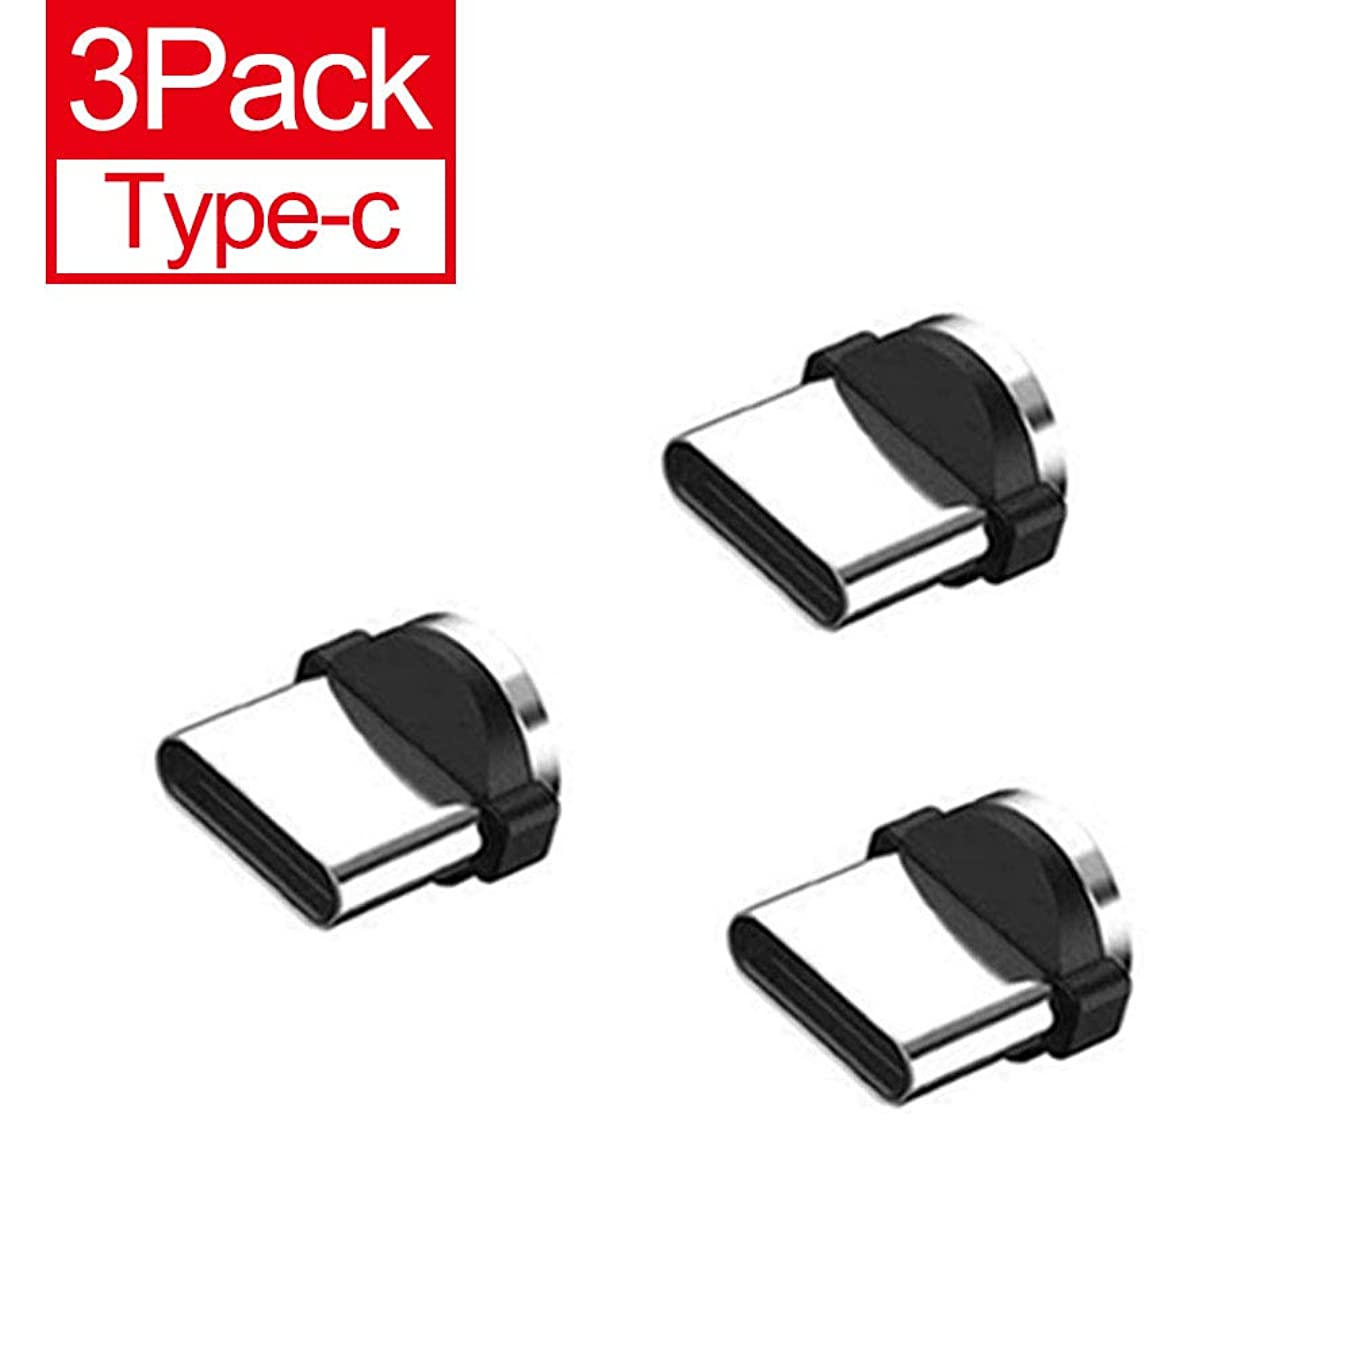 Magnetic Phone Cable Adapter Connector Tips Head for Type-c